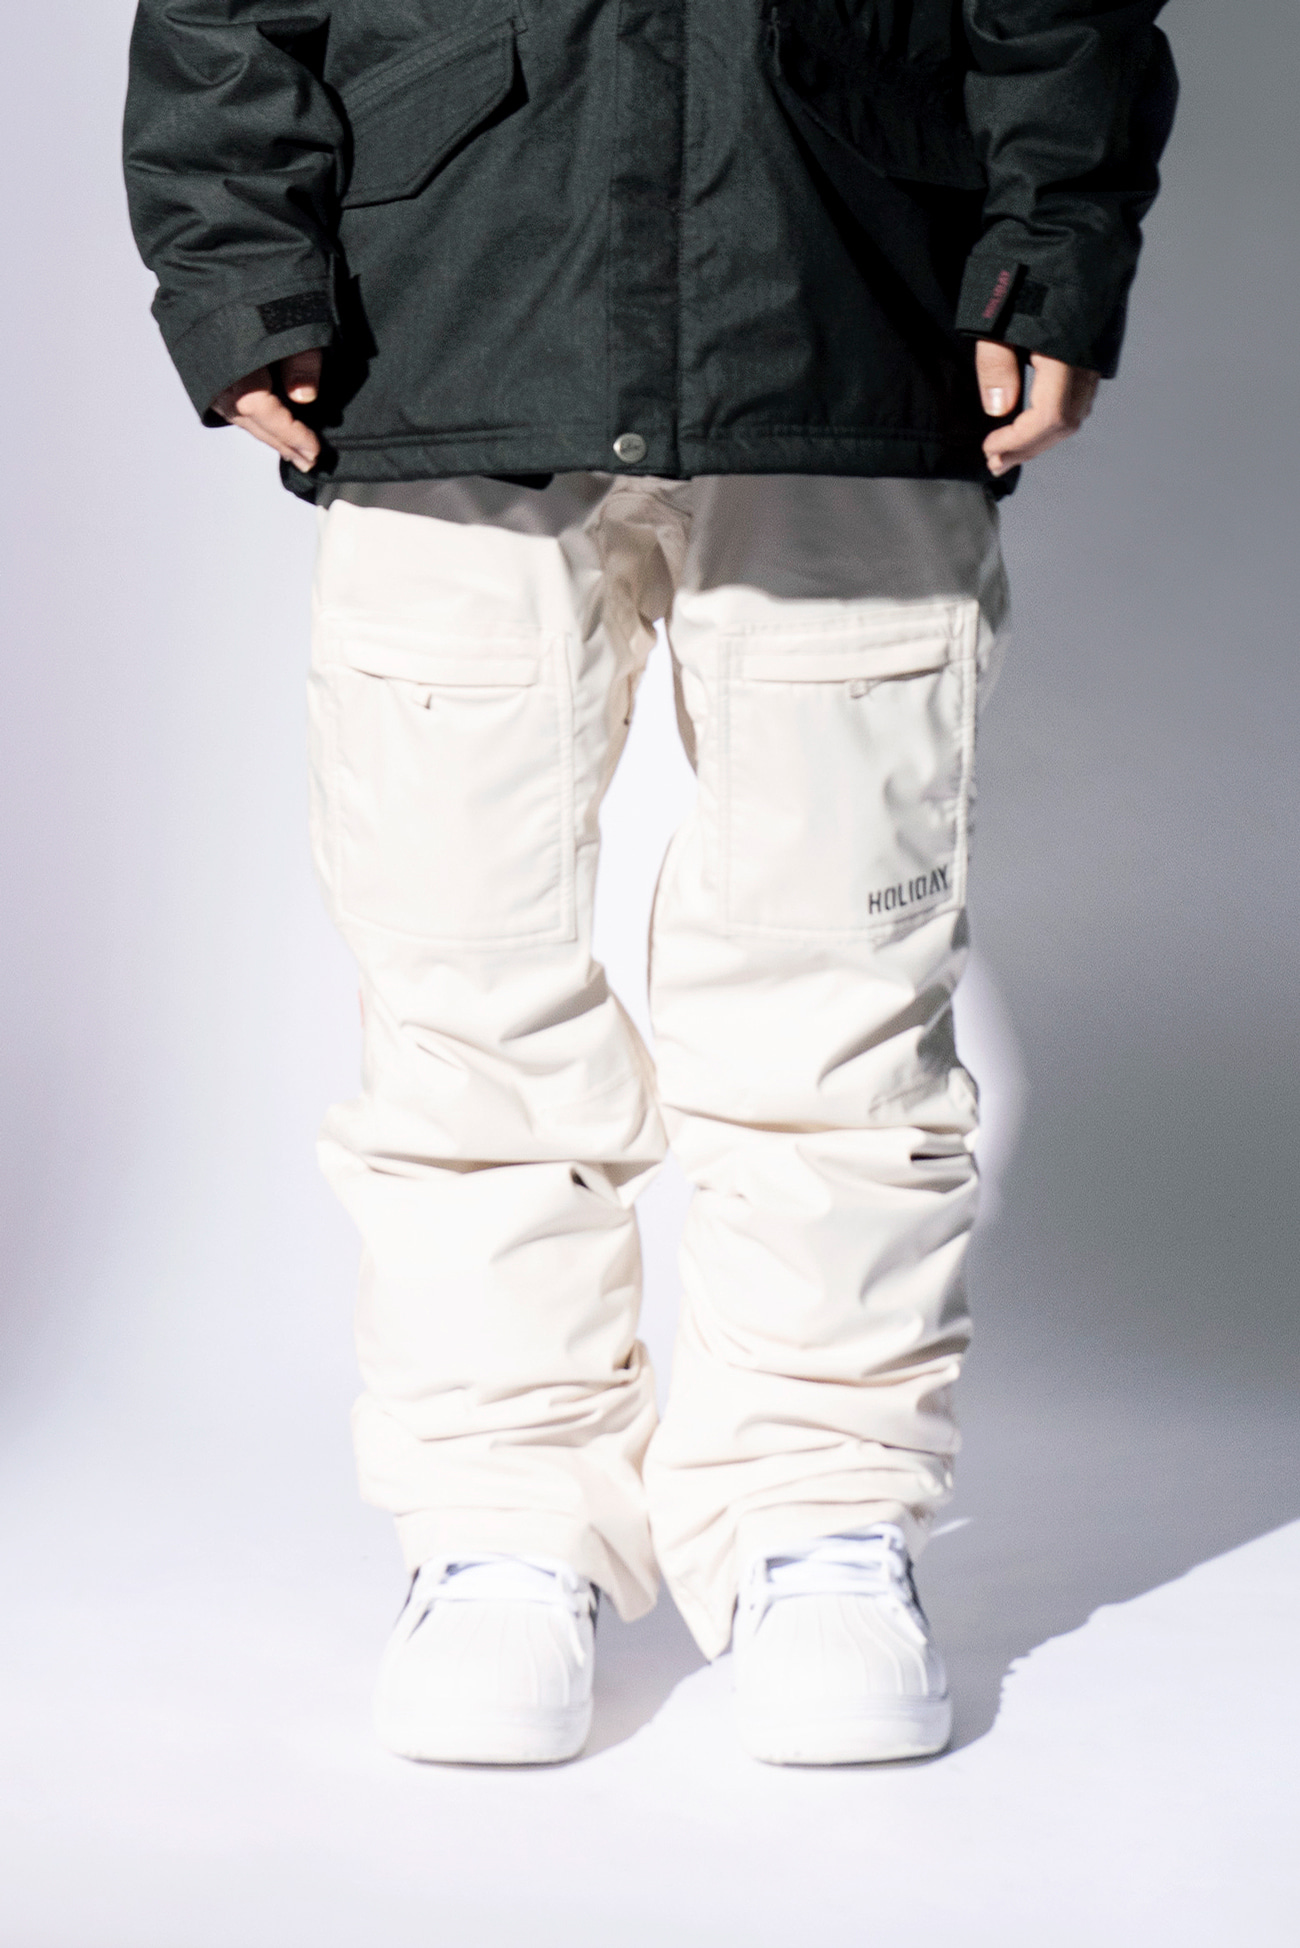 NOMAD pants - light beigeHOLIDAY OUTERWEAR